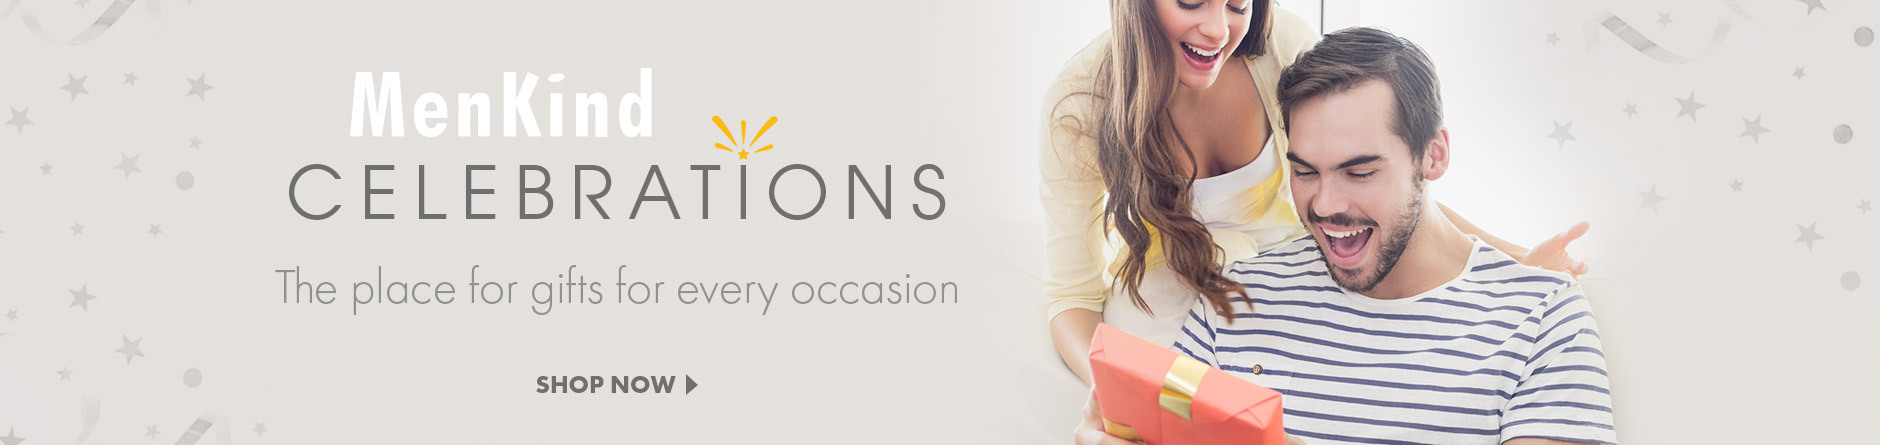 Menkind Celebrations - the place for gifts for every occasion